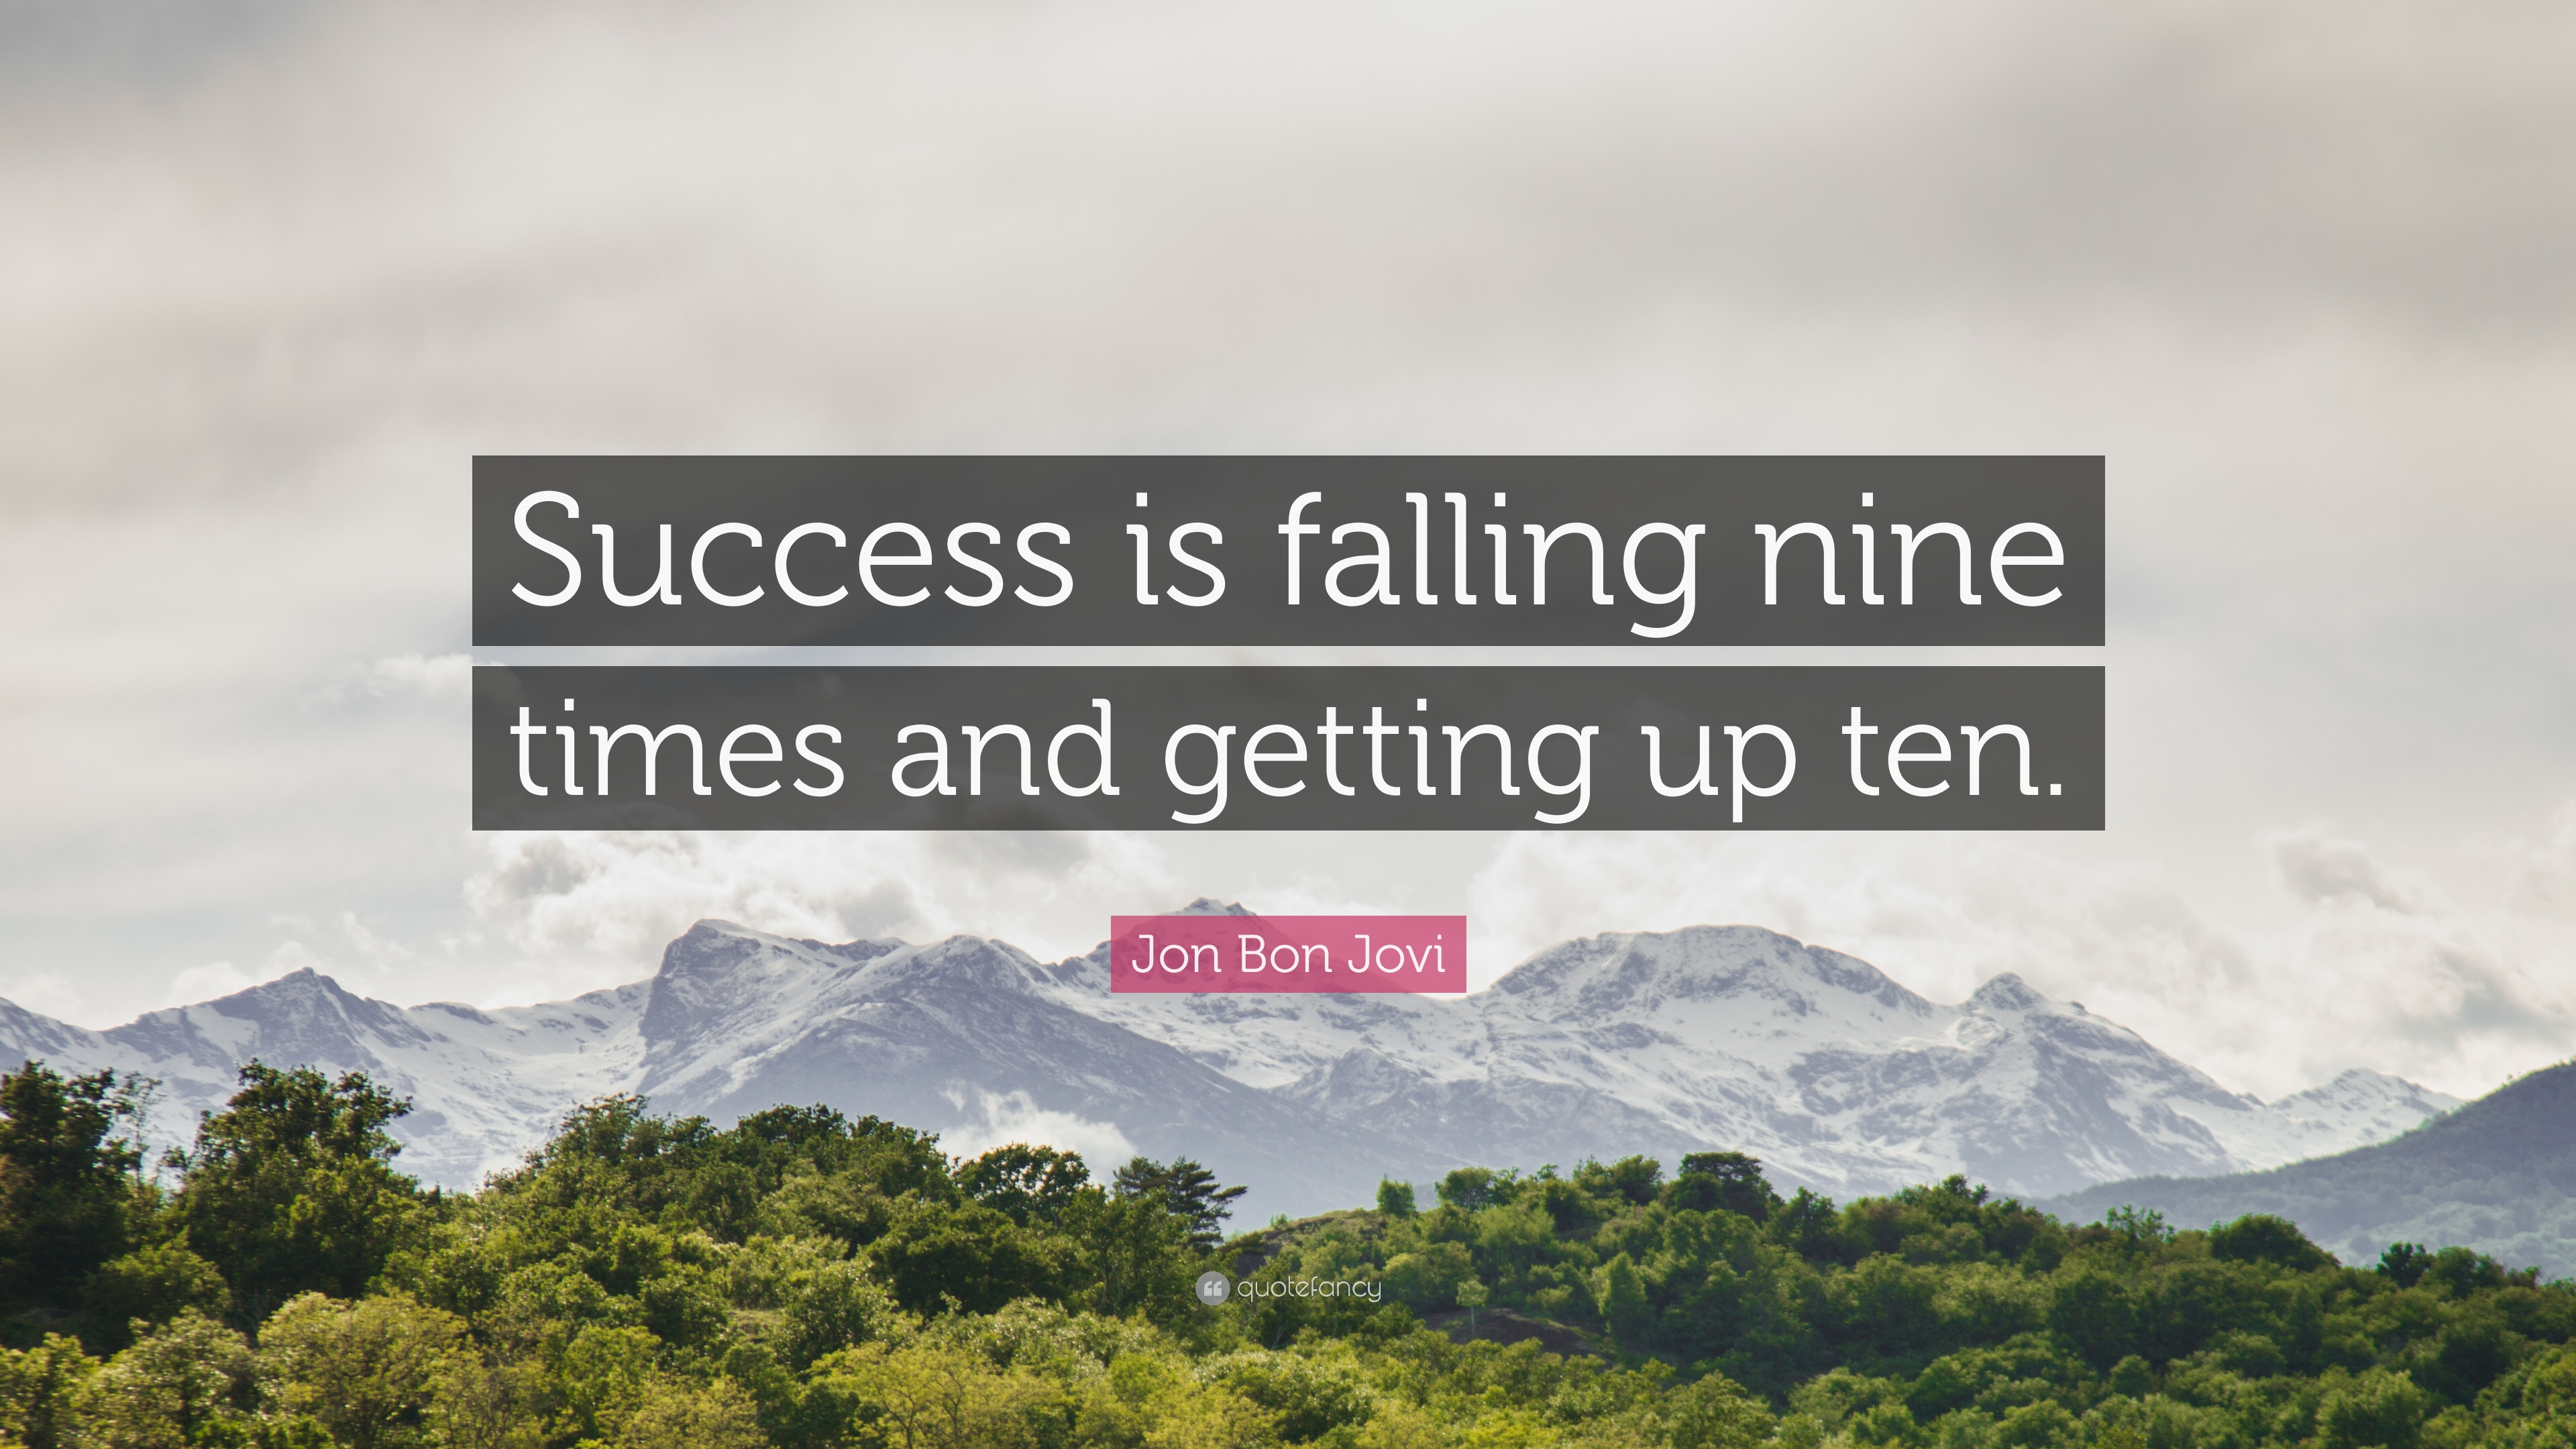 Jon Bon Jovi Quote Success Is Falling Nine Times And Getting Up